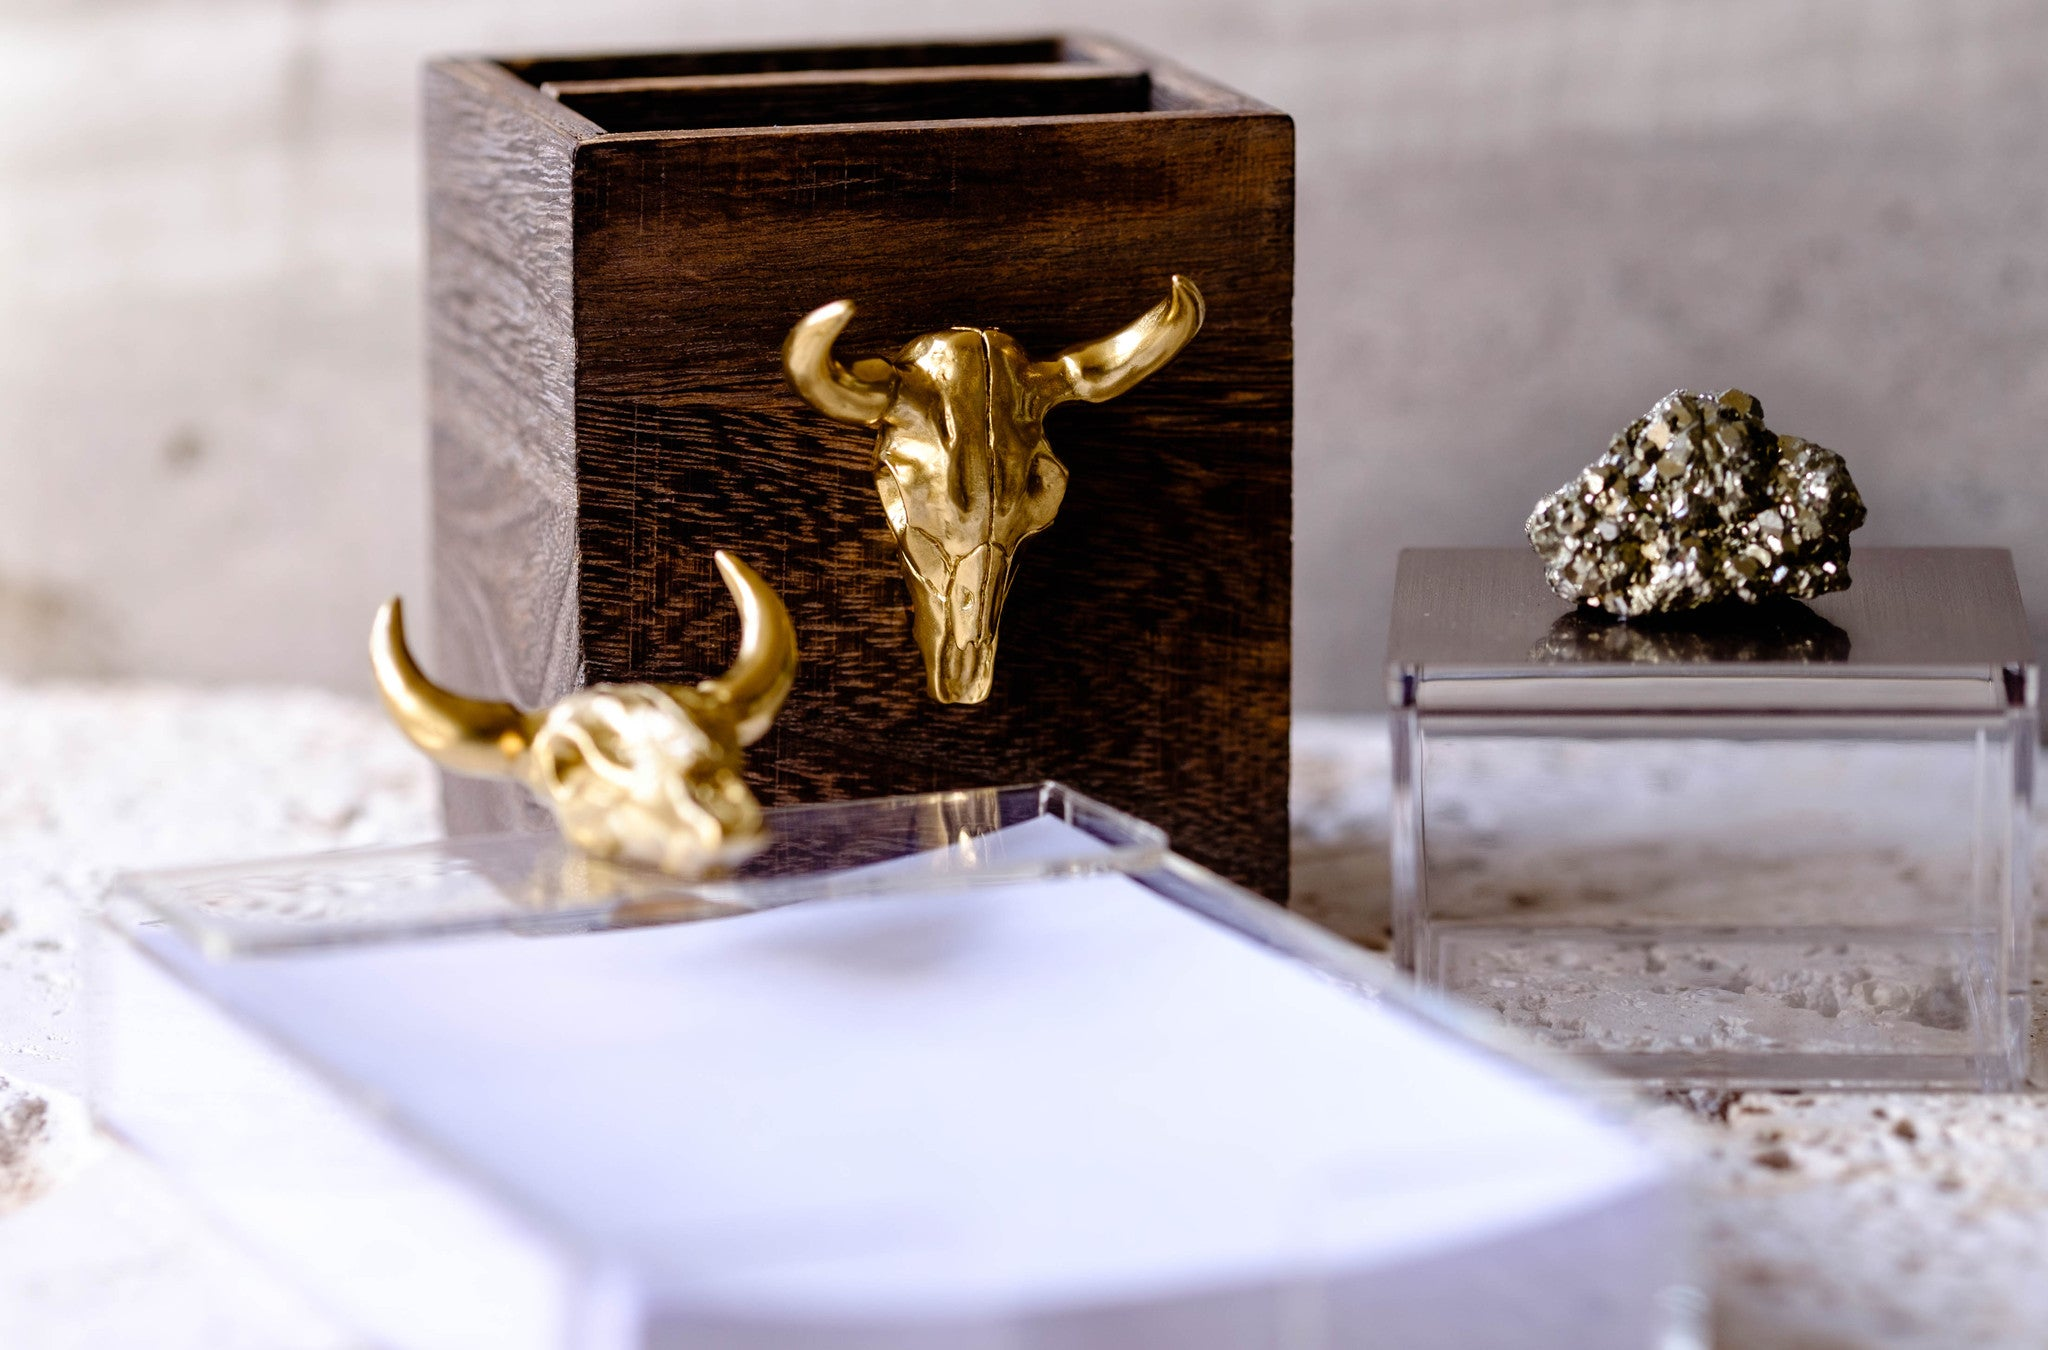 Office decor for the man cave, this unique bull head pencil cup is just enough rough and tumble for your desktop.